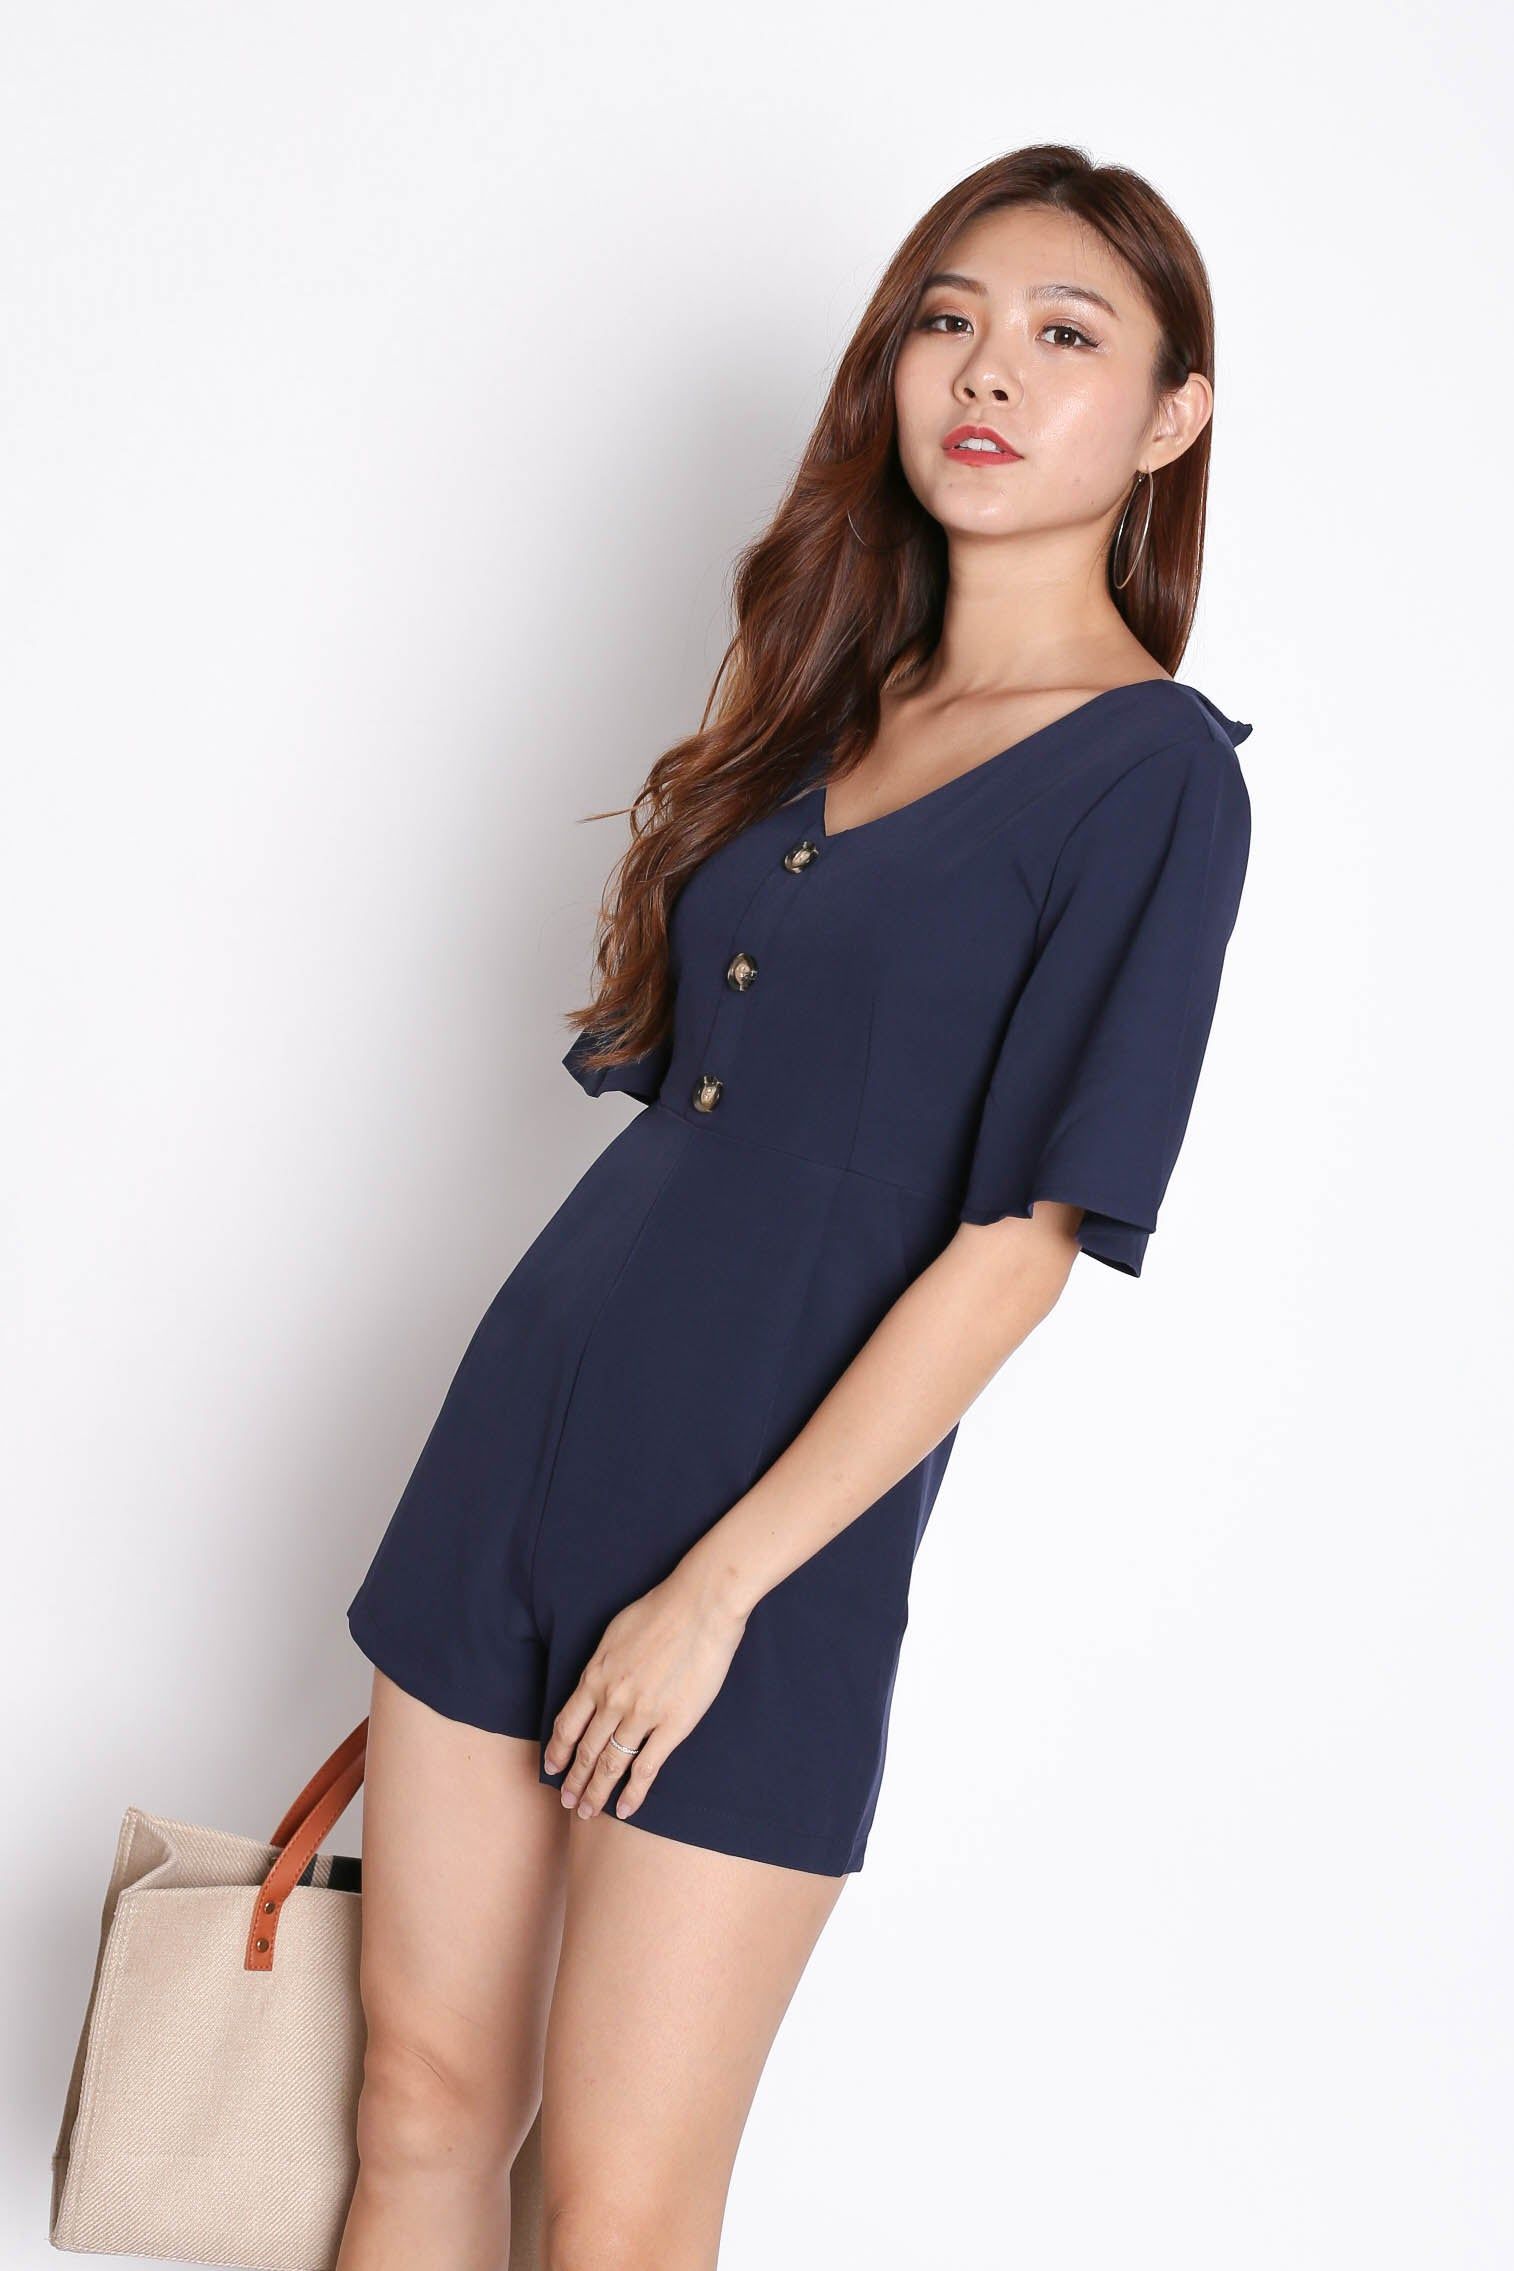 fd8a67834769 *TPZ* (PREMIUM) ZARA BUTTON ROMPER IN NAVY – TOPAZETTE